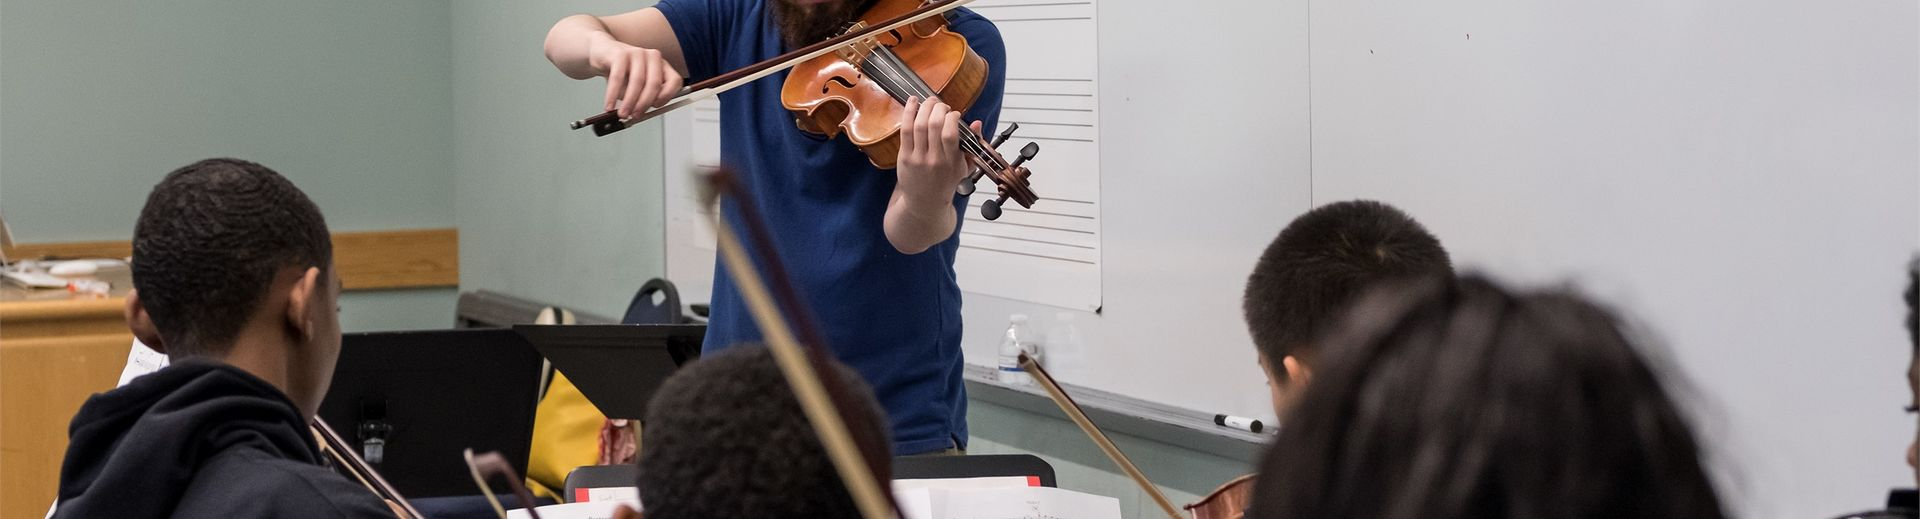 A violin teacher plays at the front of the class in front of young students.